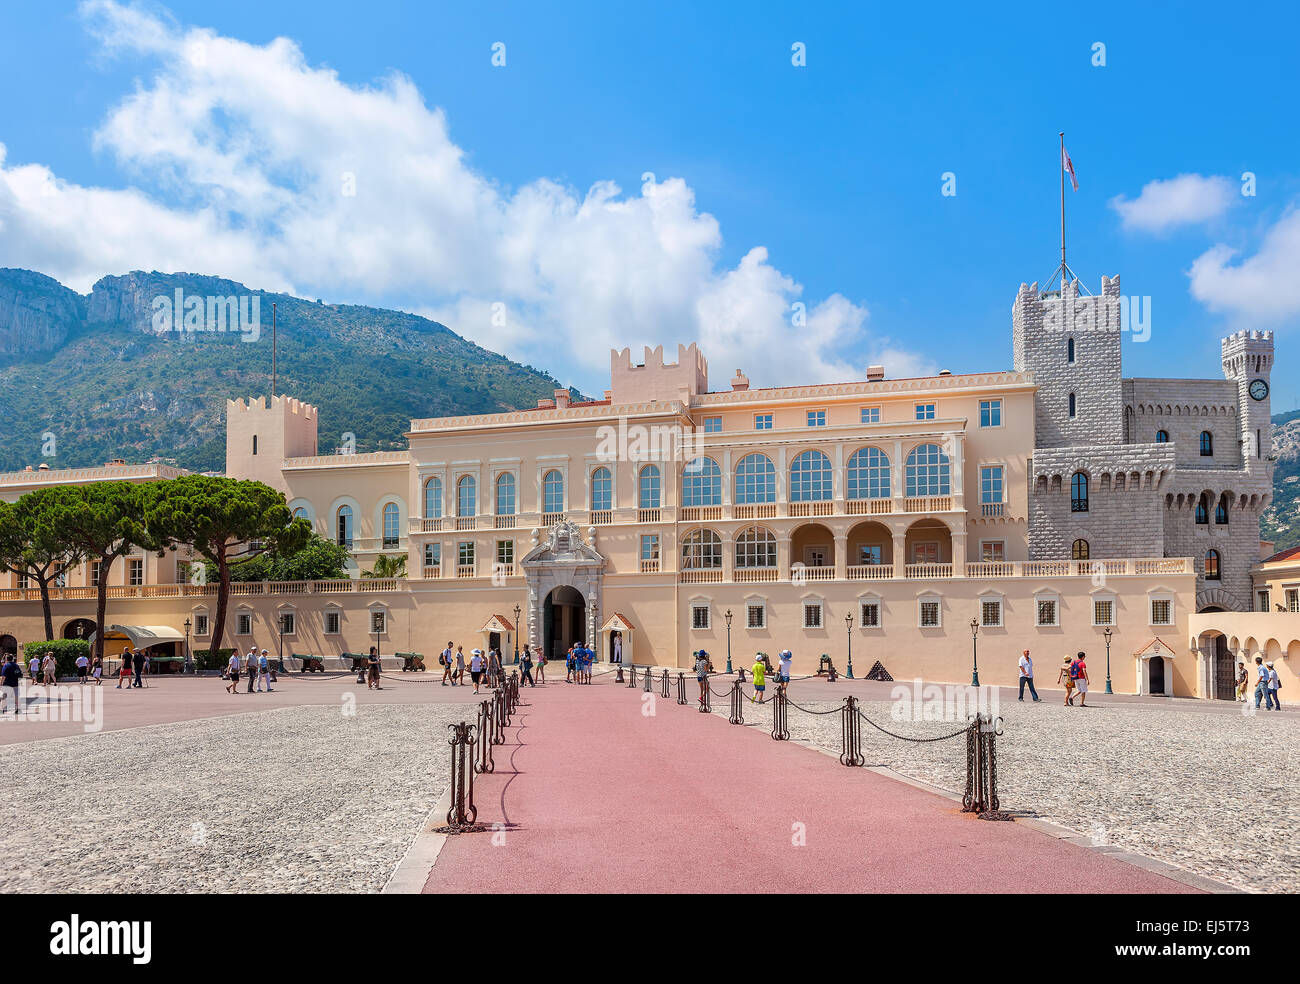 Square and facade view of the palace - official residence of Prince of Monaco. - Stock Image